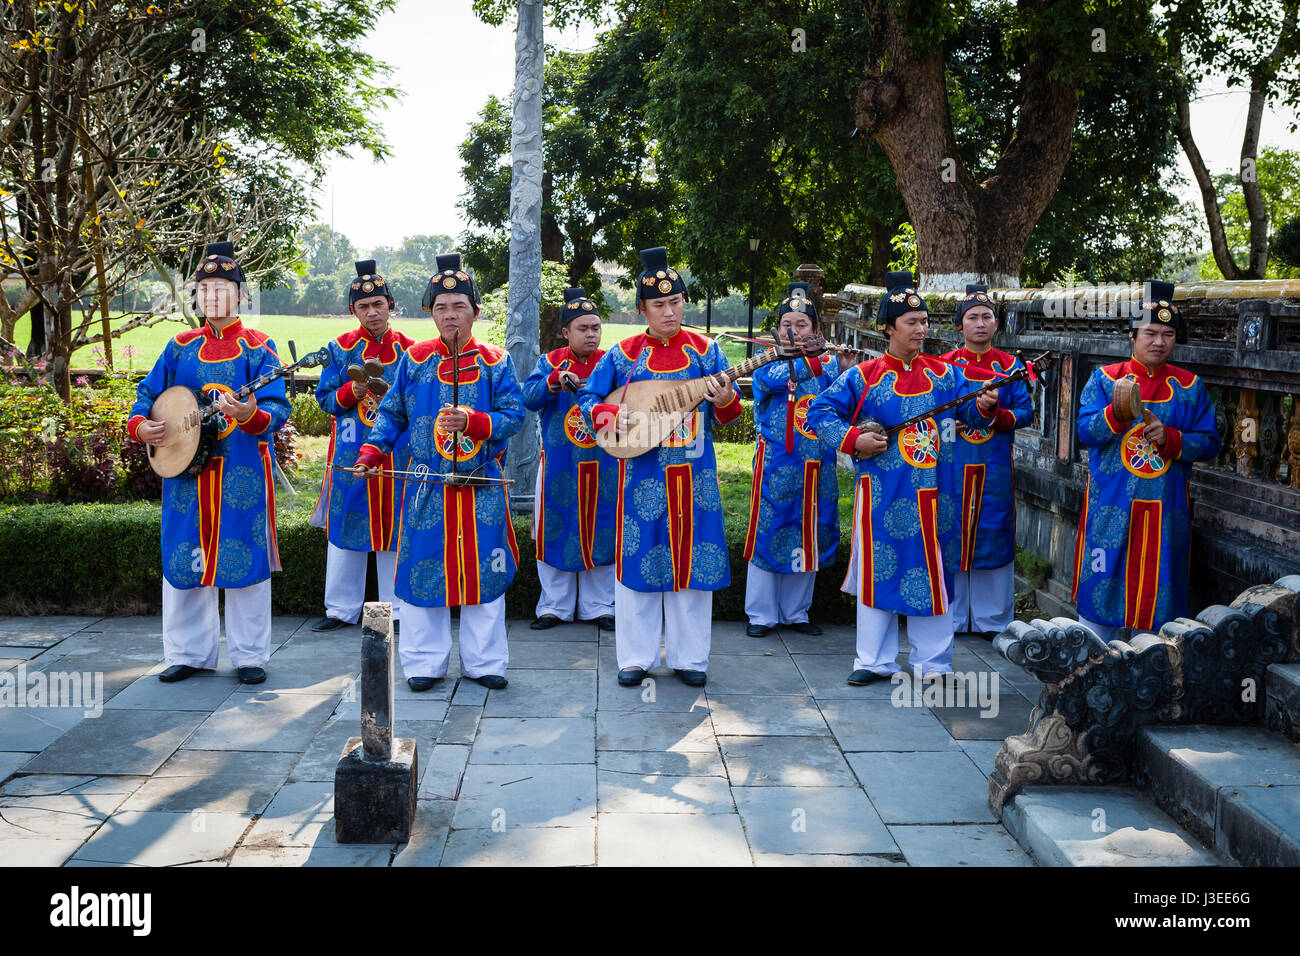 Hoi An, Vietnam - march 10 2017: vietnamese traditional music band is giving concert in Imperial Citadel - Stock Image